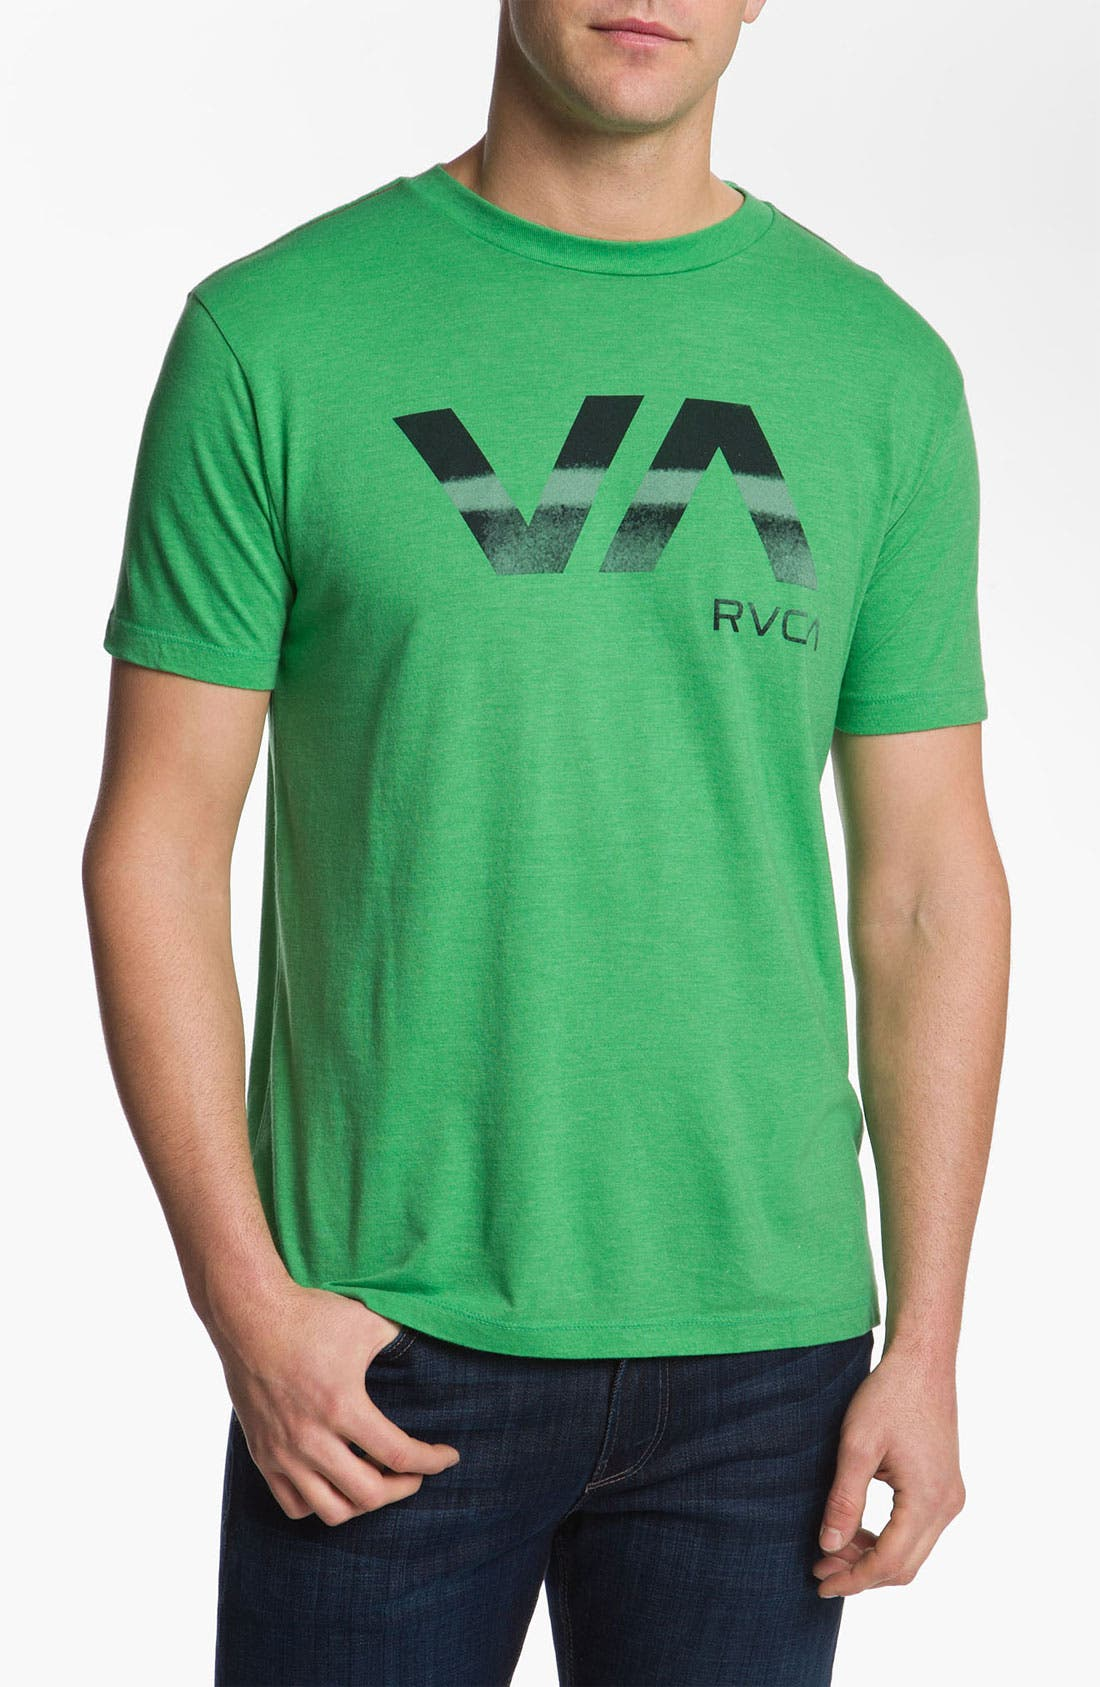 Alternate Image 1 Selected - RVCA 'Stressed VA' T-Shirt